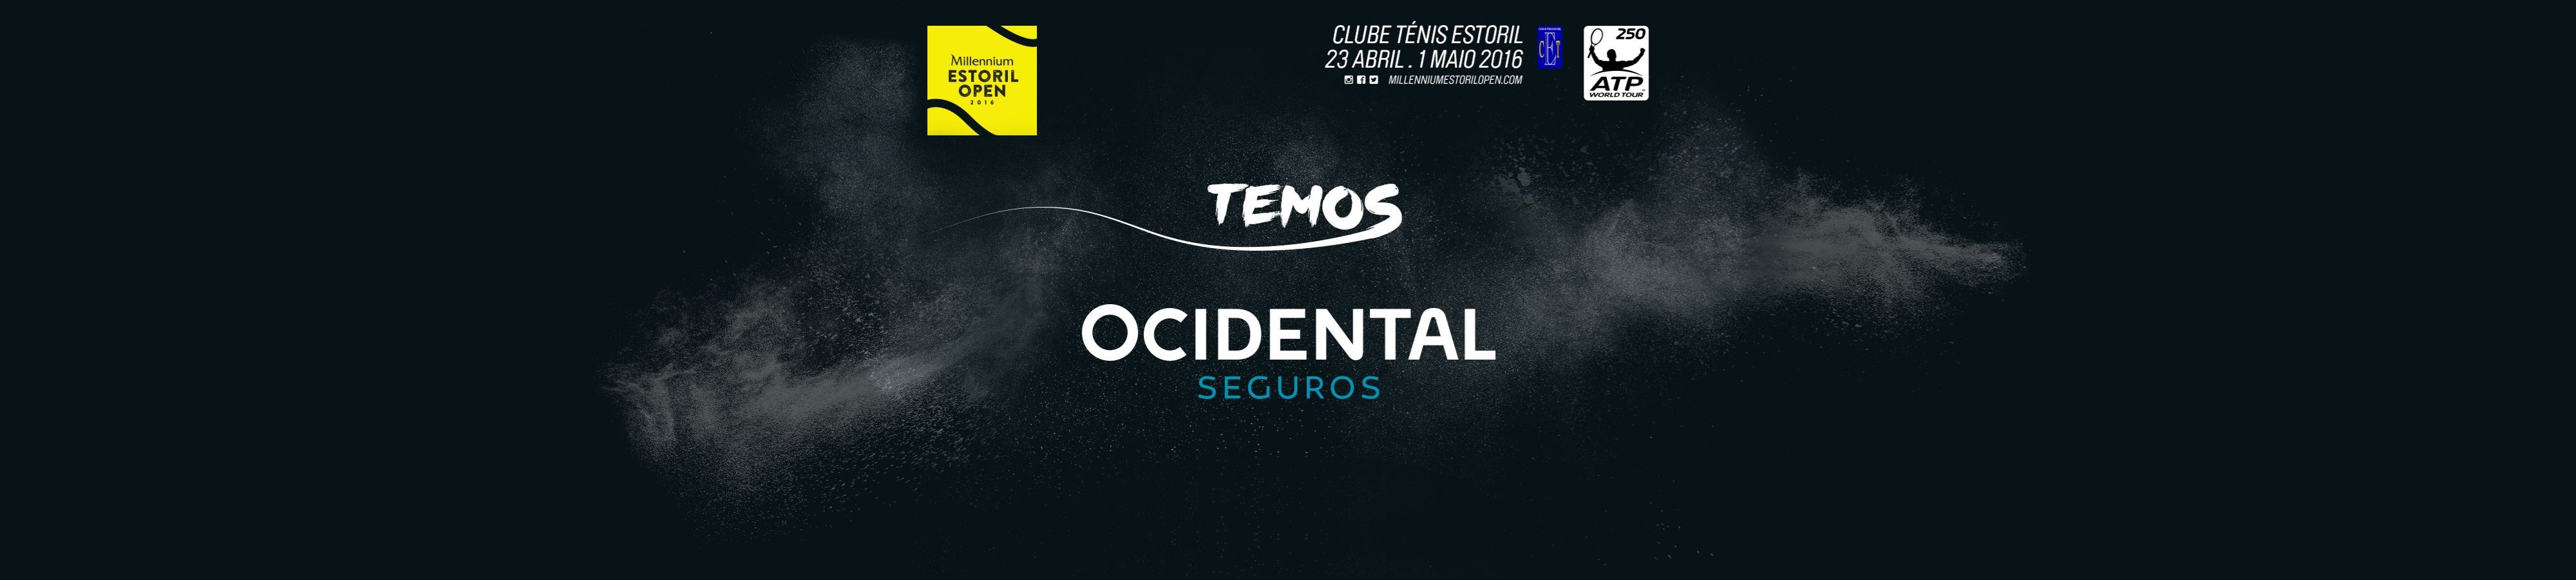 estoril-open-seguro-pela-ocidental